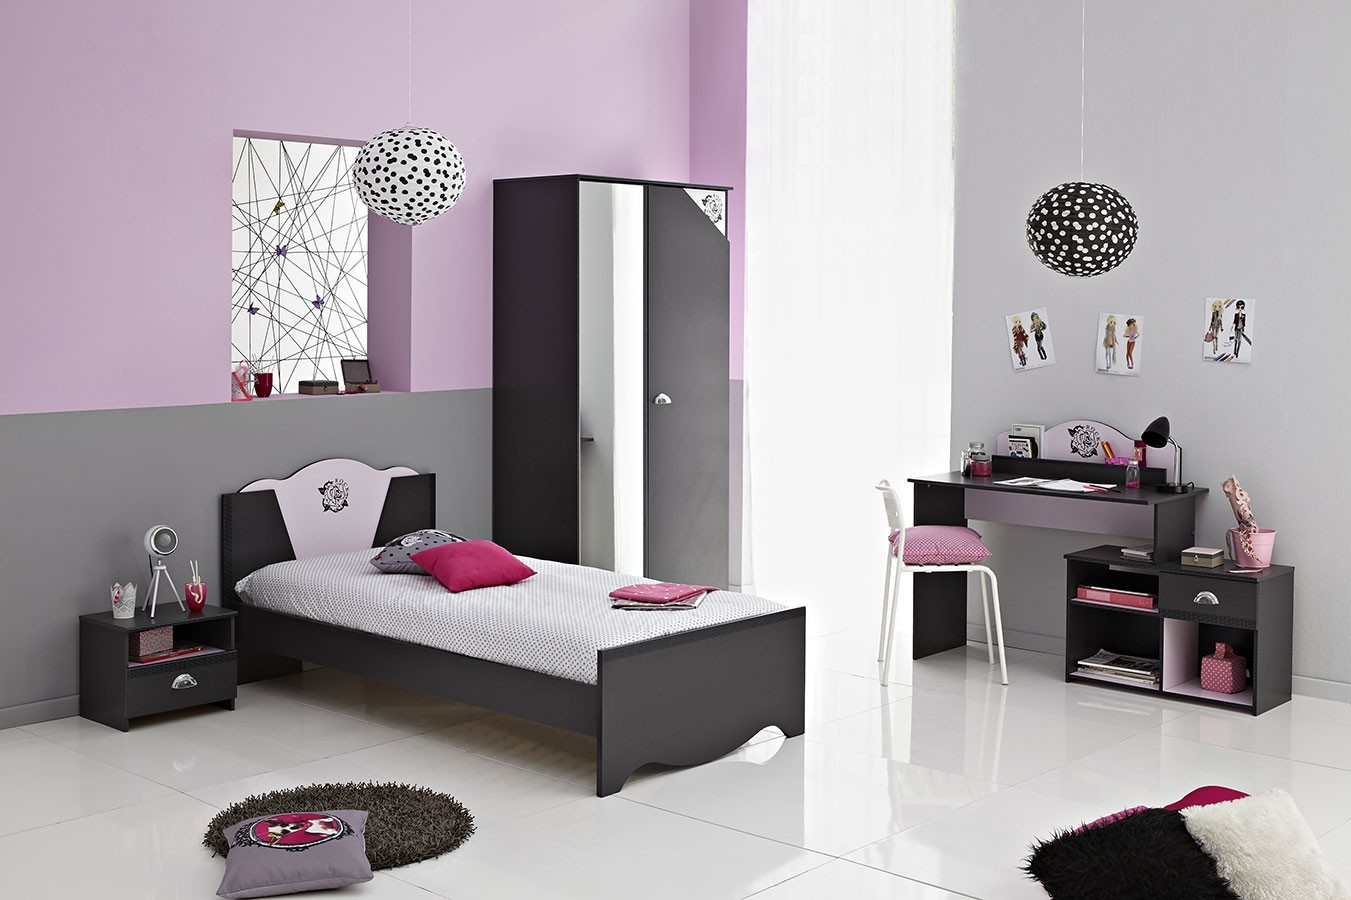 chambre ado style industriel customiser une lampe pour chambre dado la vie devant moi deco. Black Bedroom Furniture Sets. Home Design Ideas